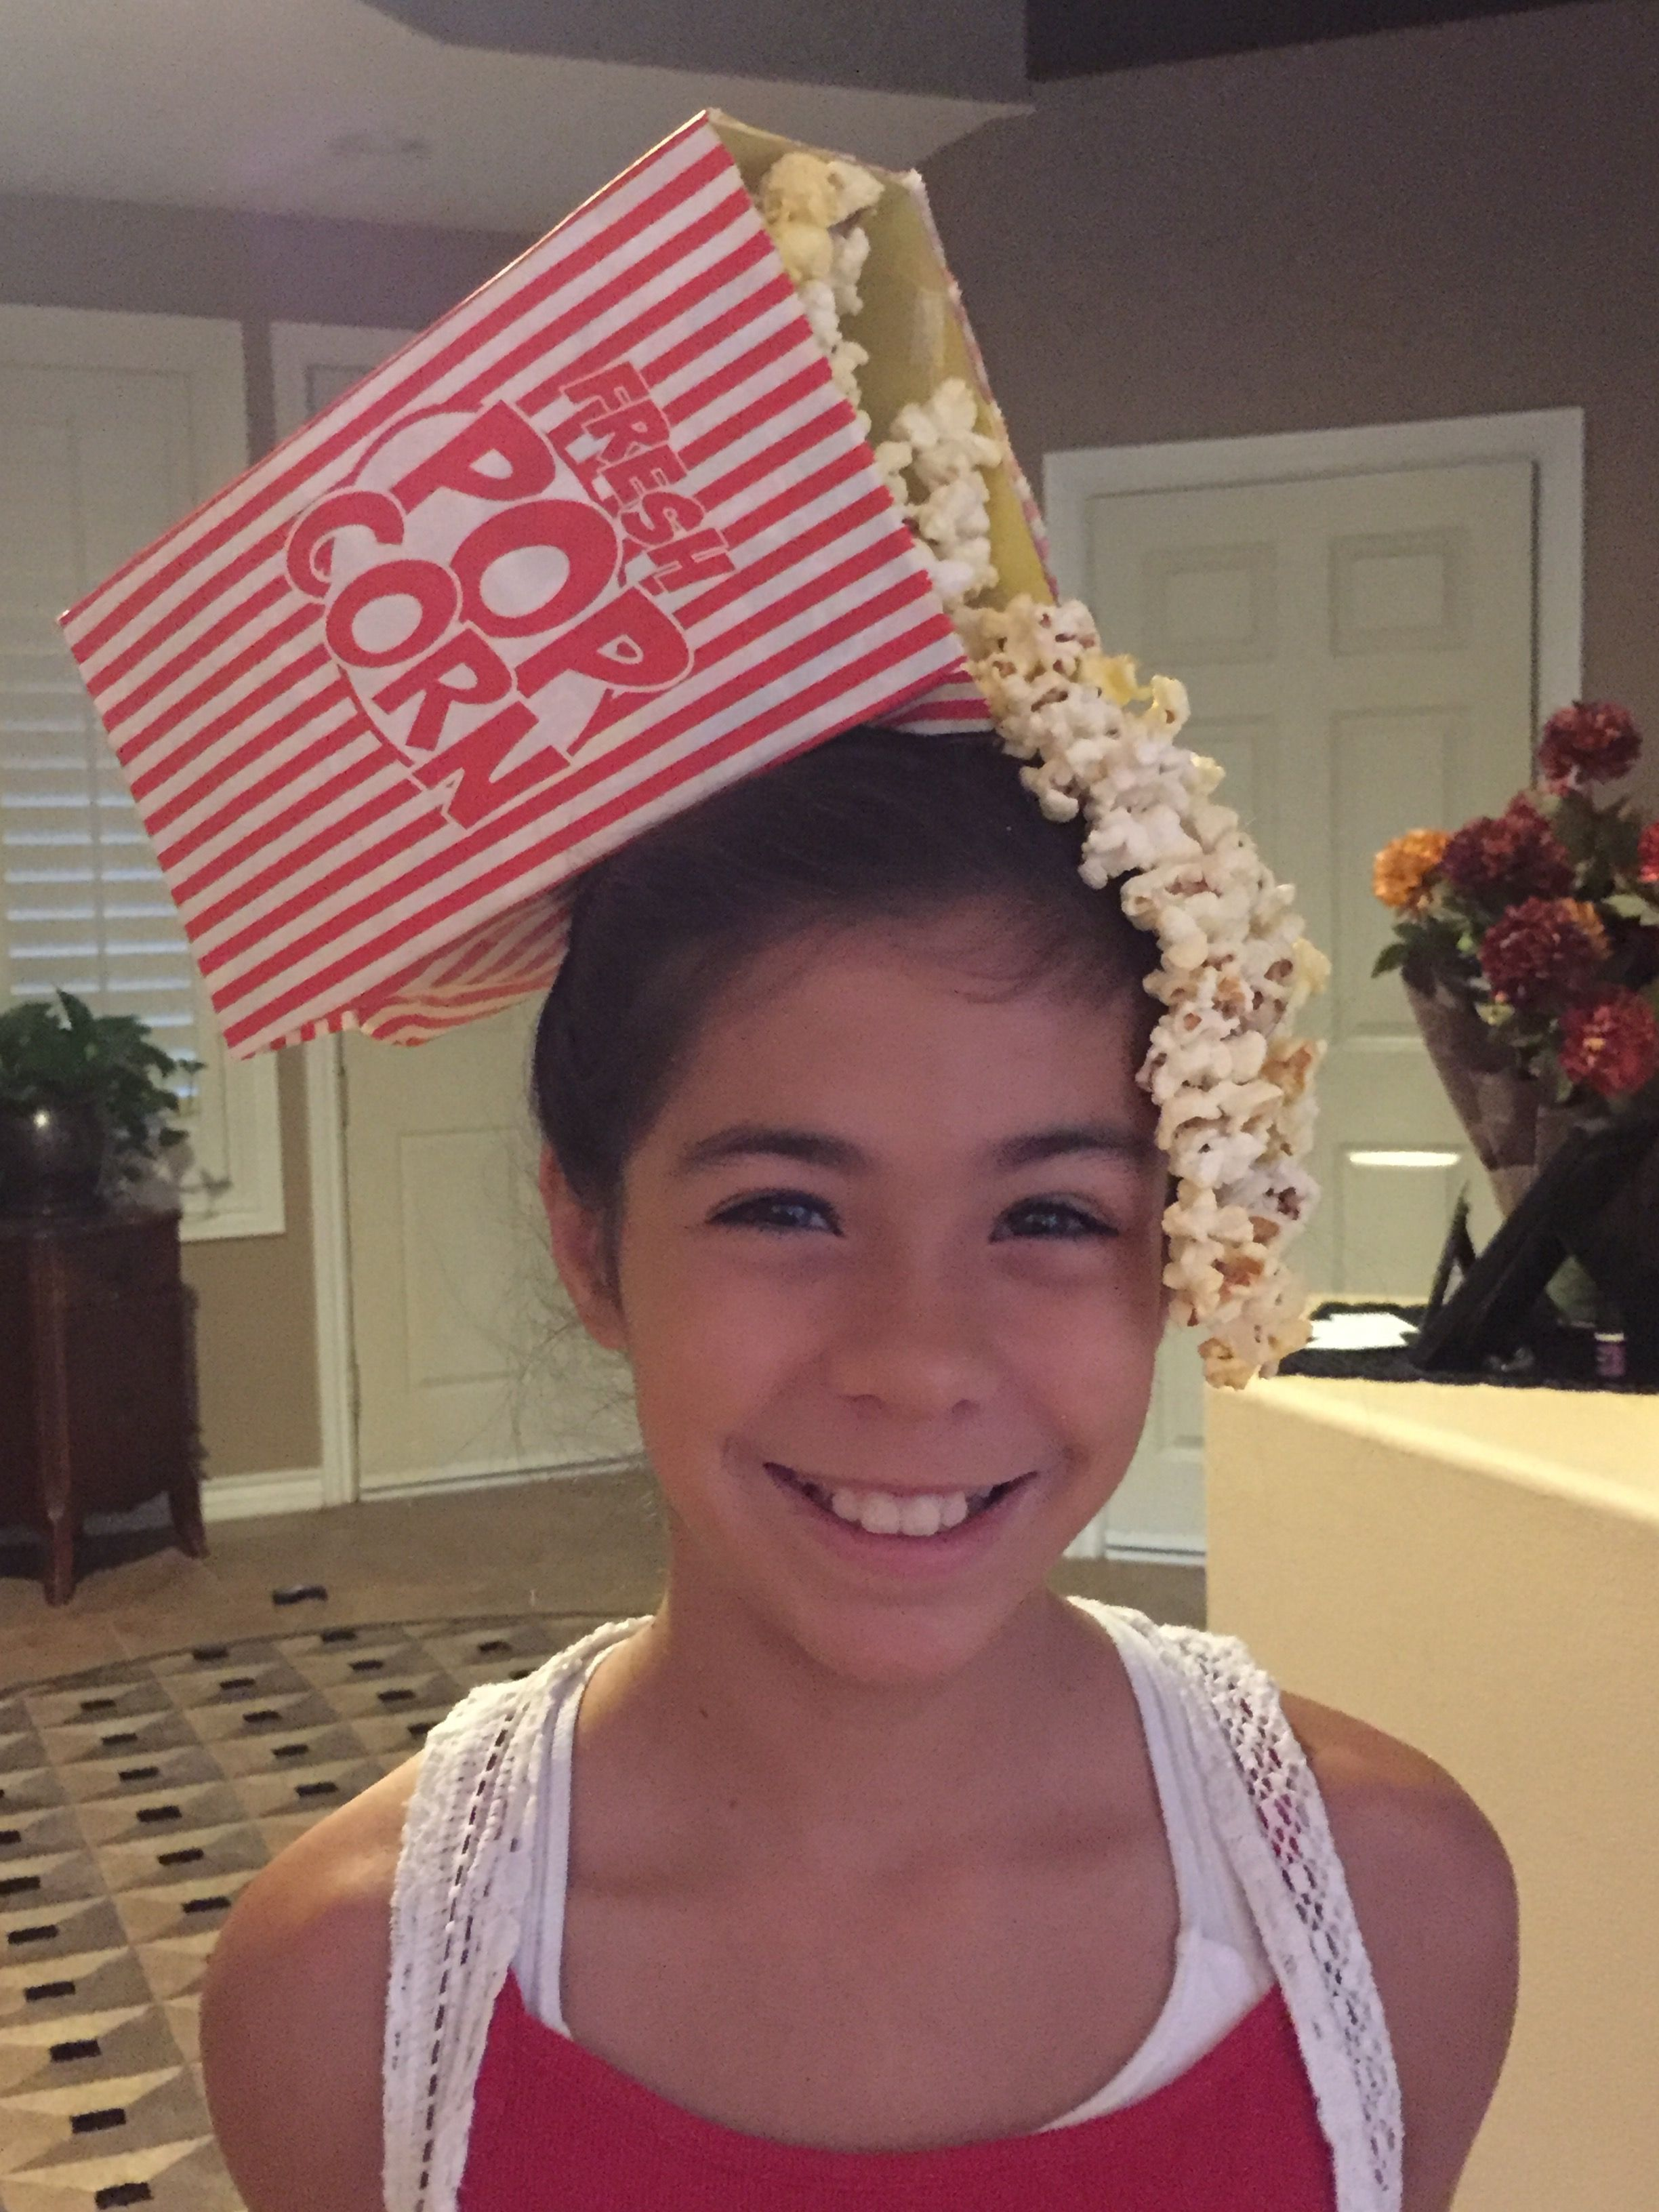 Silly Crazy Hair Day Popcorn Crazy Hair Days Wacky Hair